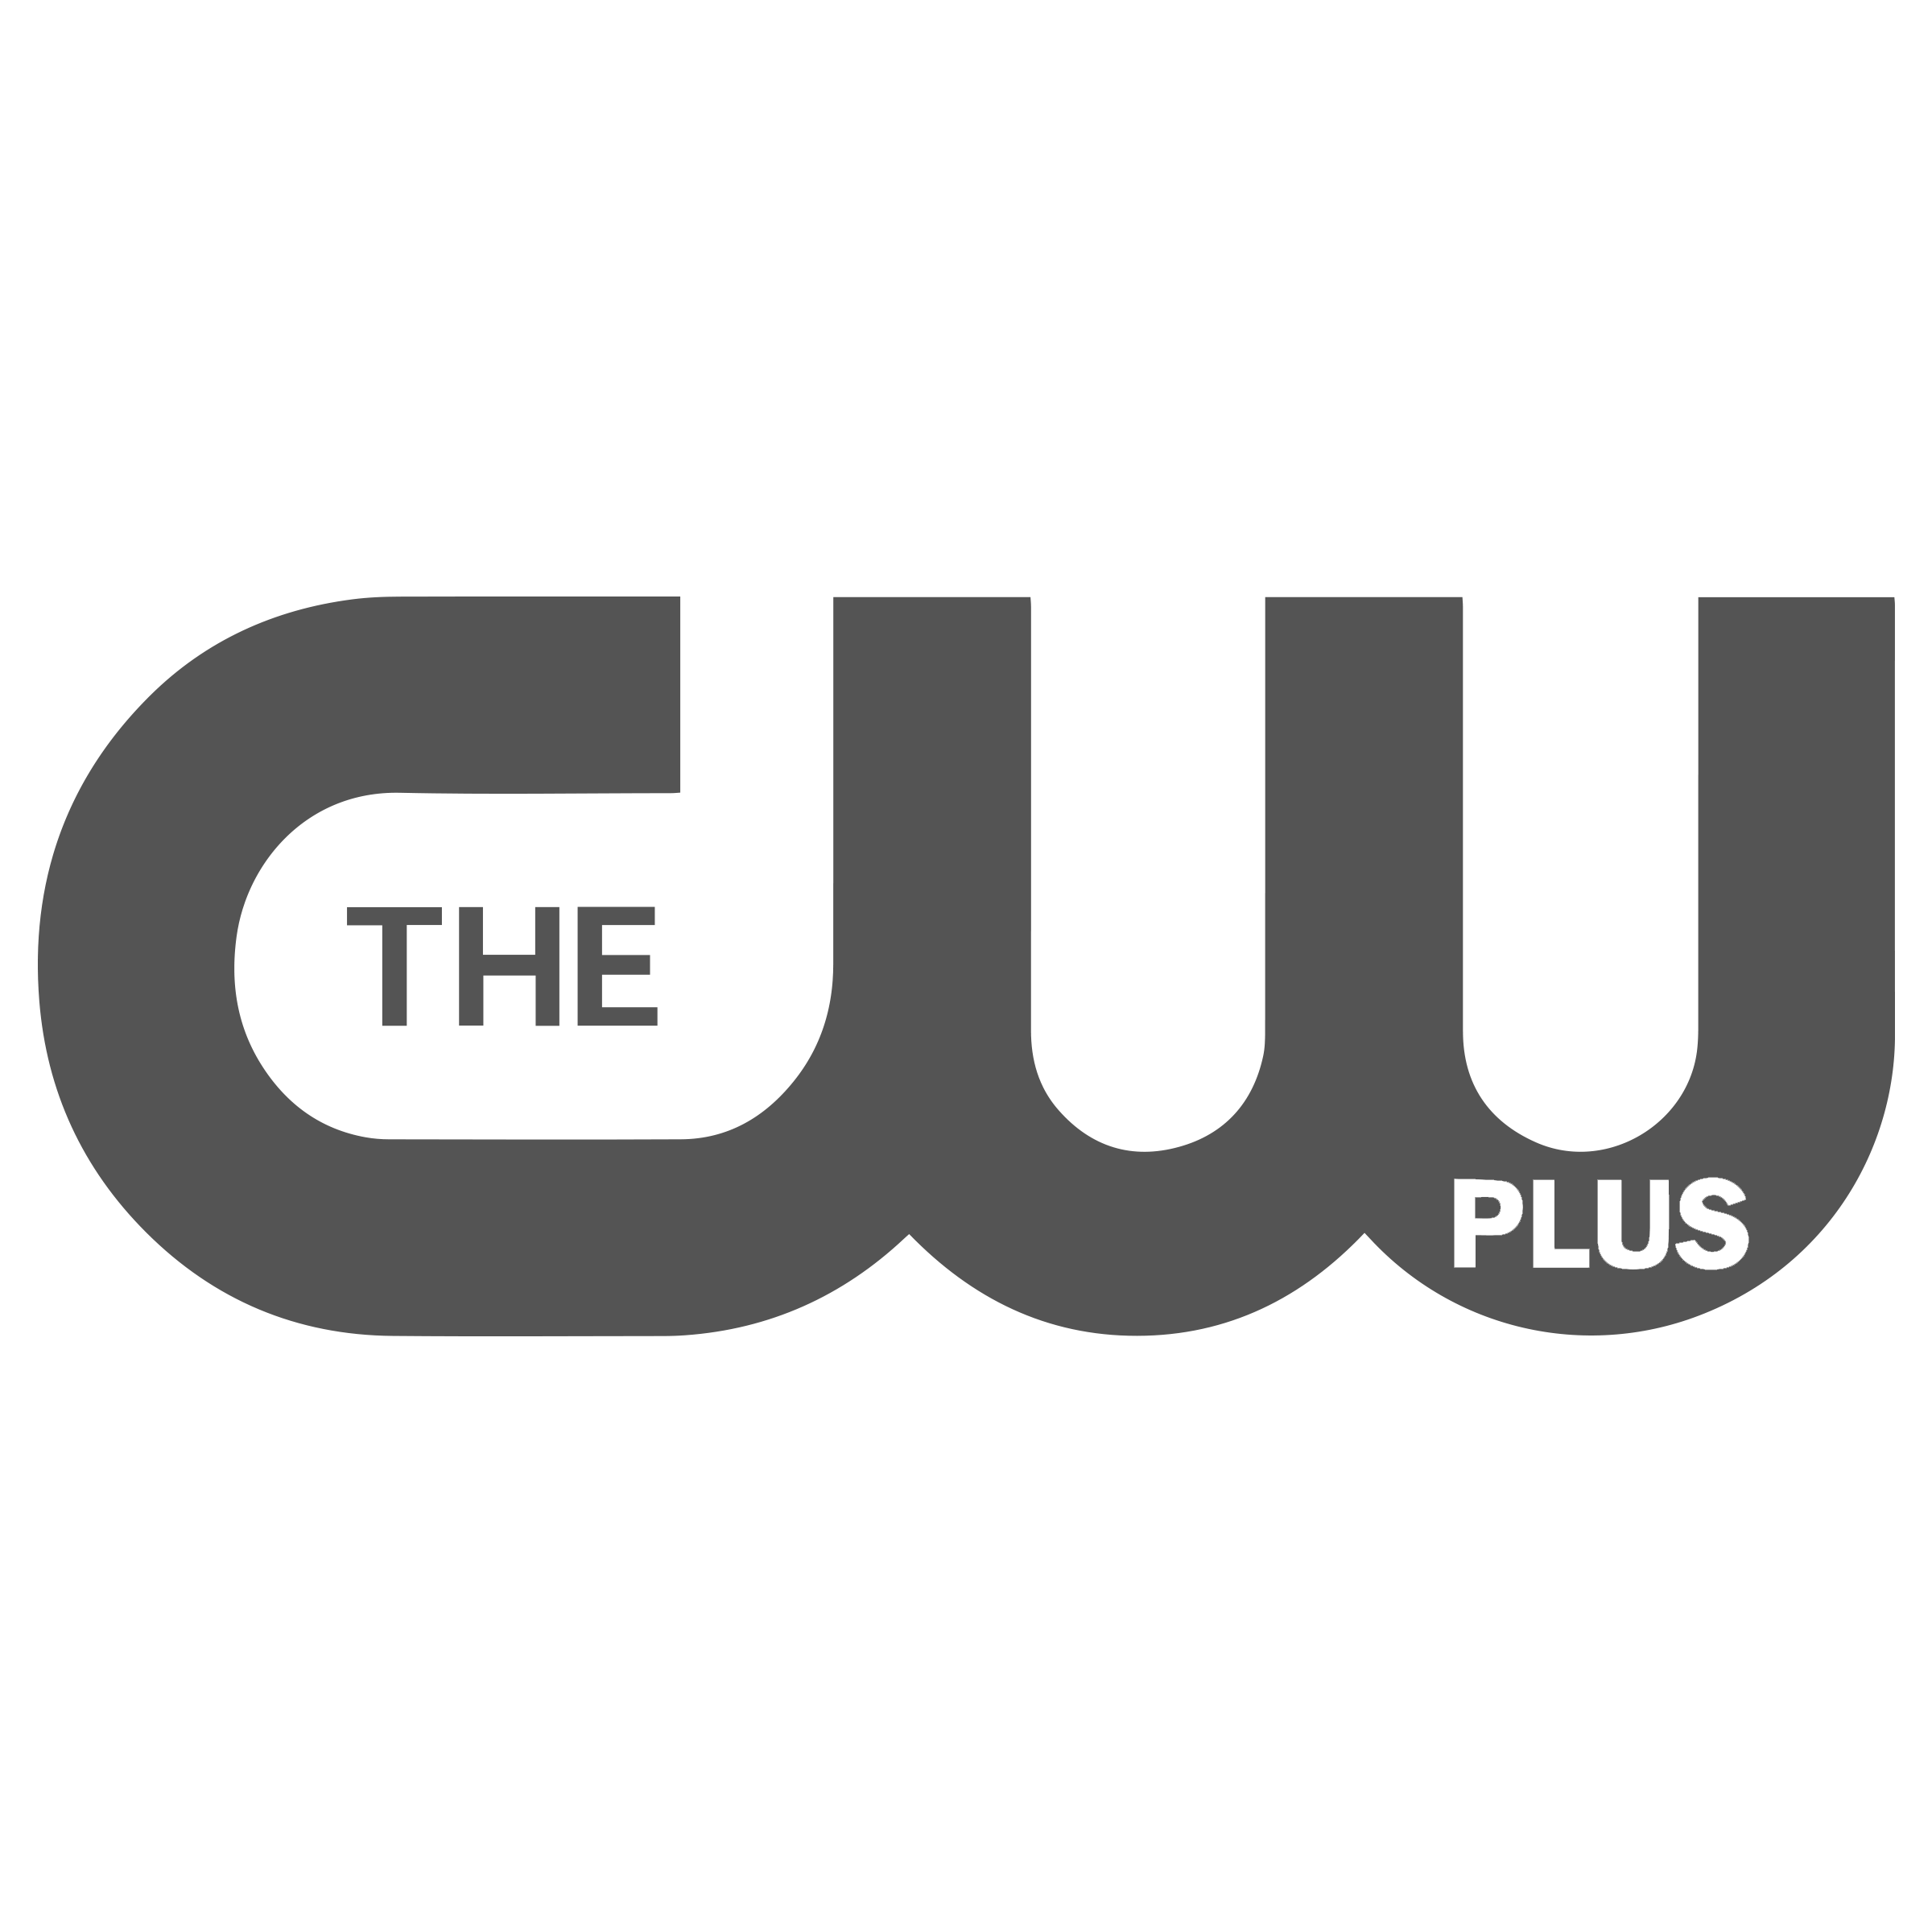 Duluth, MN TV Guide - Today's TV Schedule (55803)